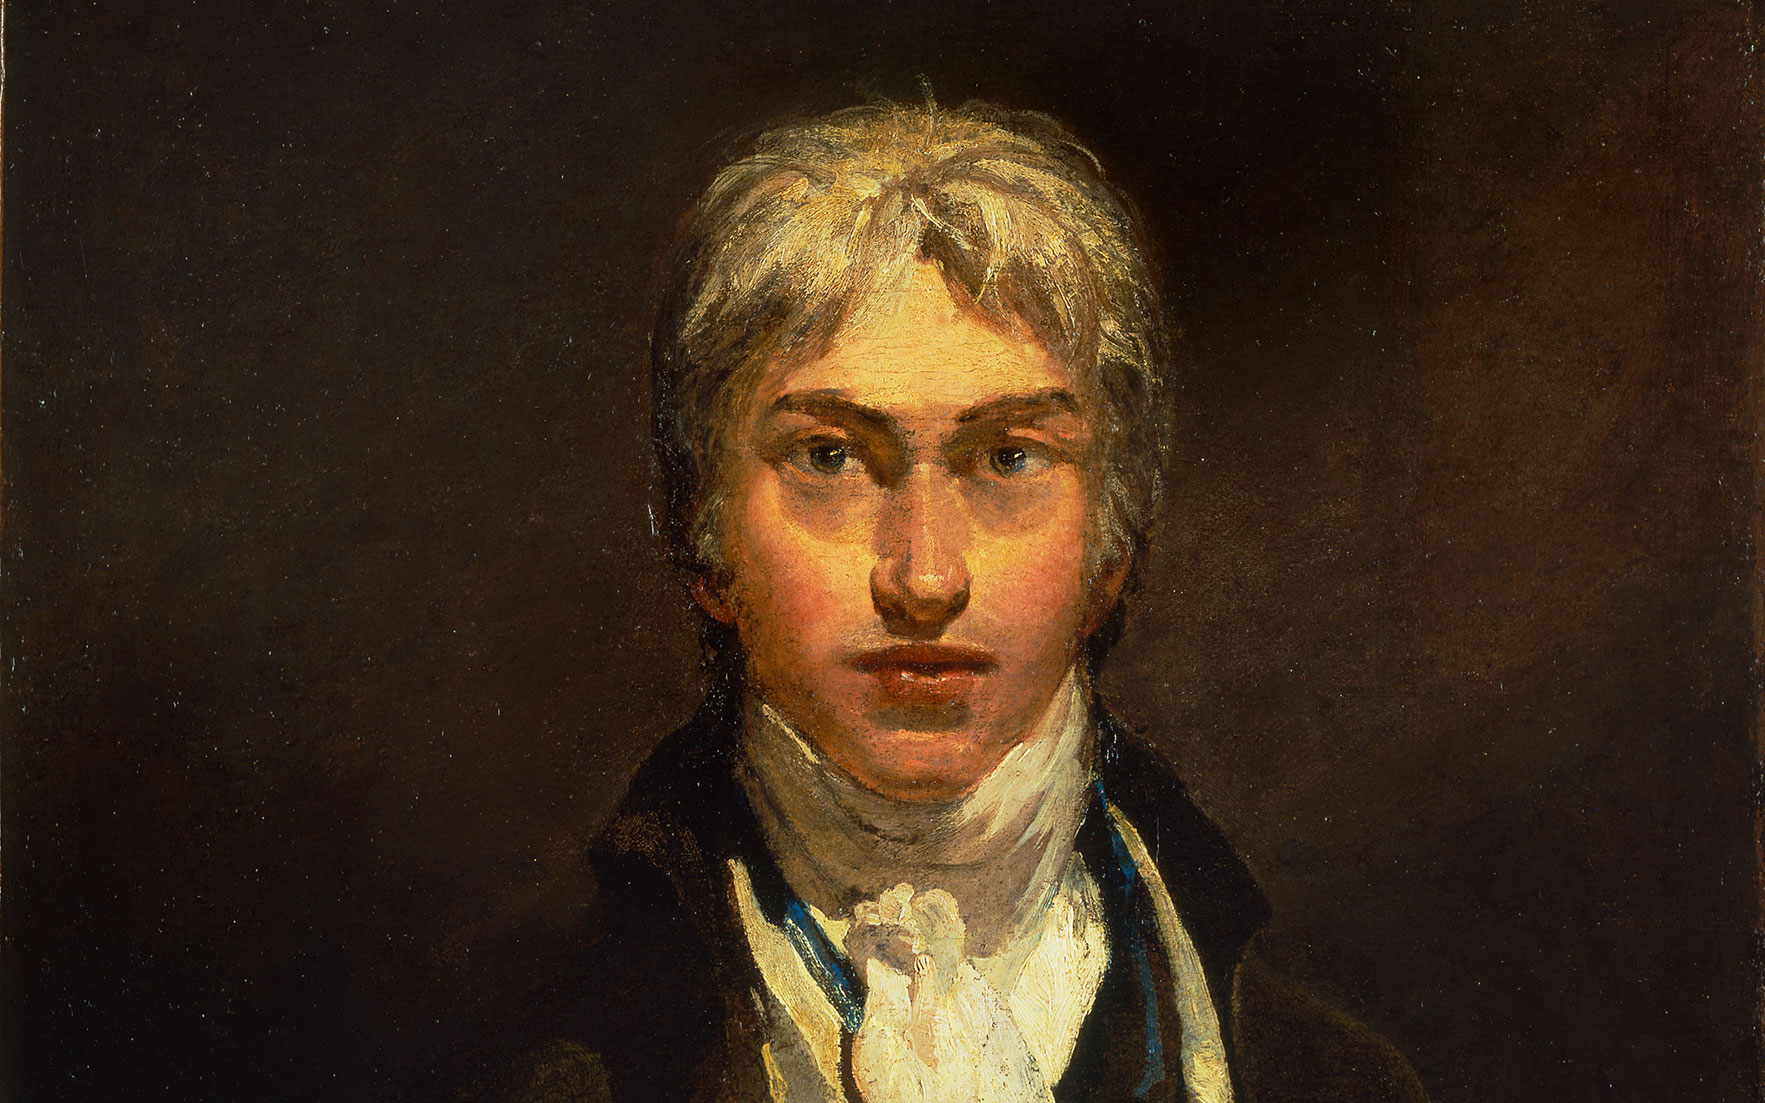 Joseph Mallord William Turner, Self-Portrait, circa 1799 (detail). Photo © Tate, London 2017